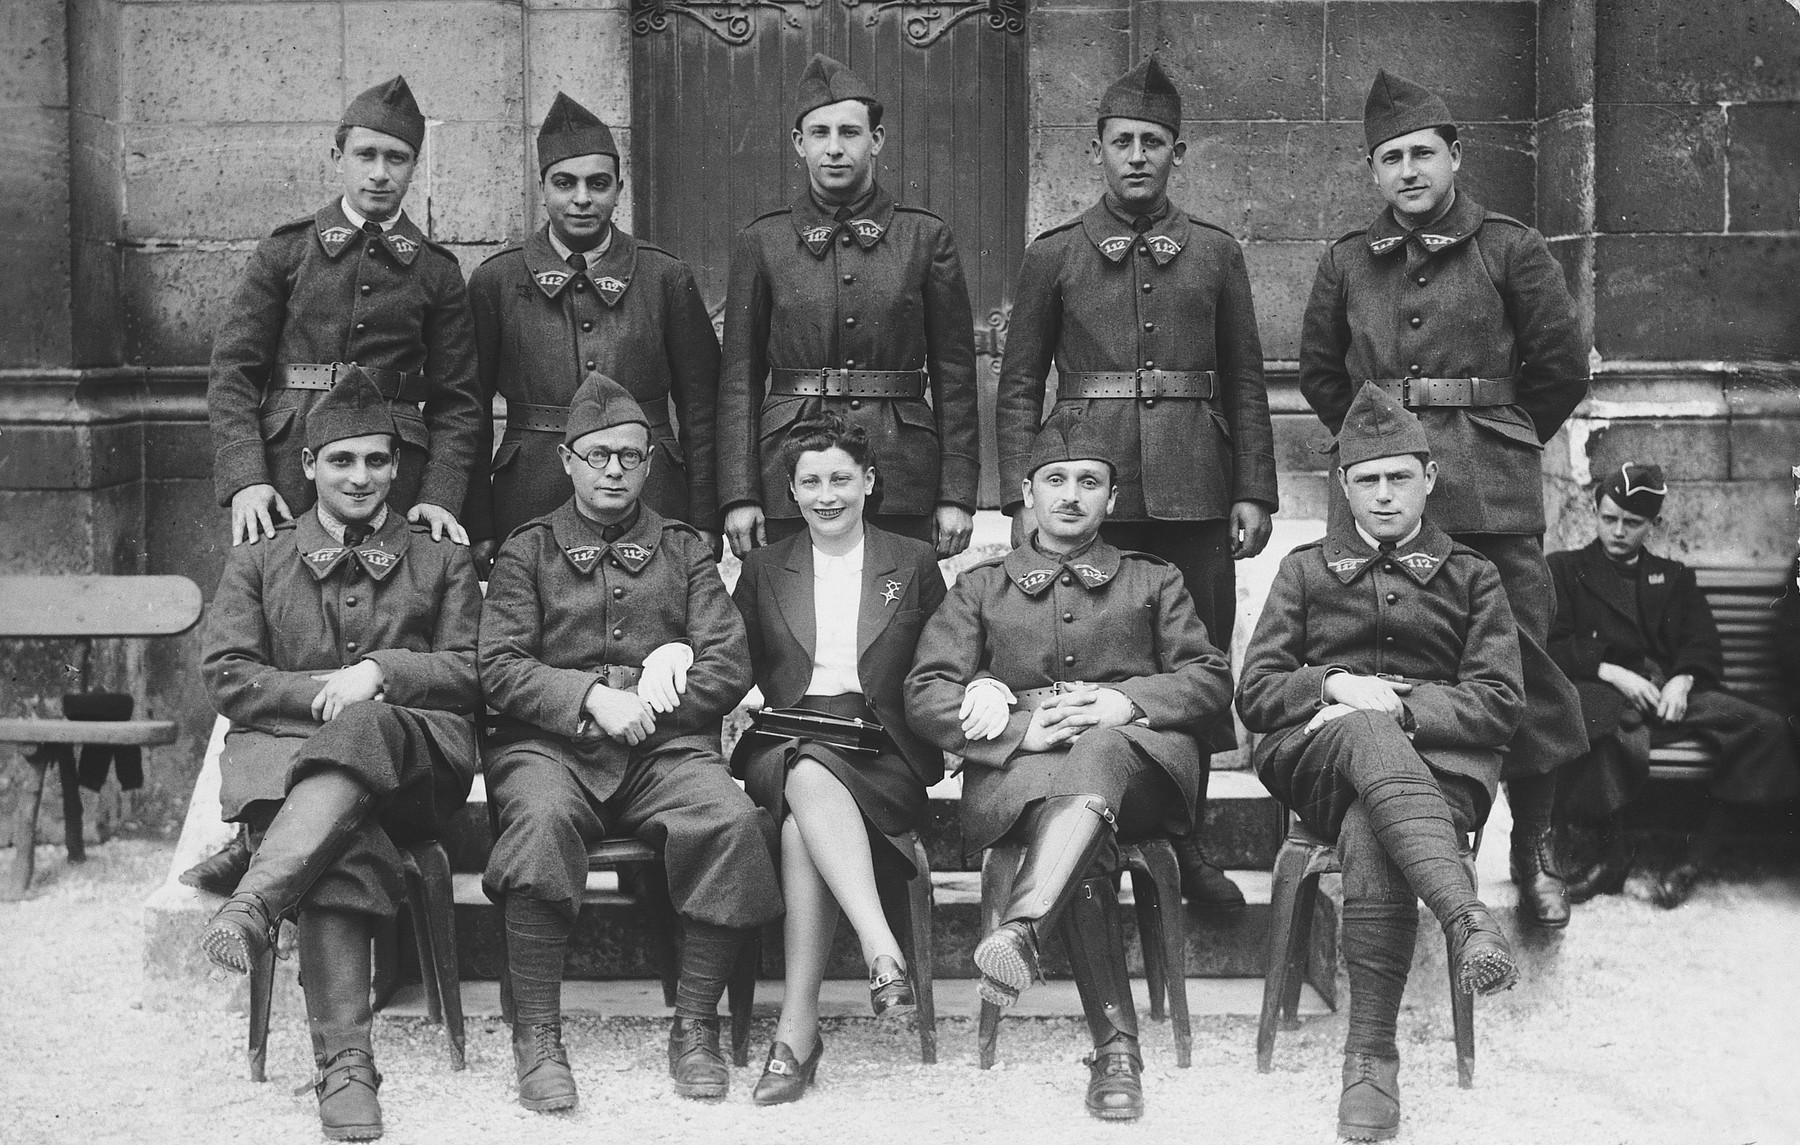 Group portrait of French soldiers shortly after the German invasion.  Among those pictured is Mattieu Findling (first row, far right), a foreign born Jew in the French army.